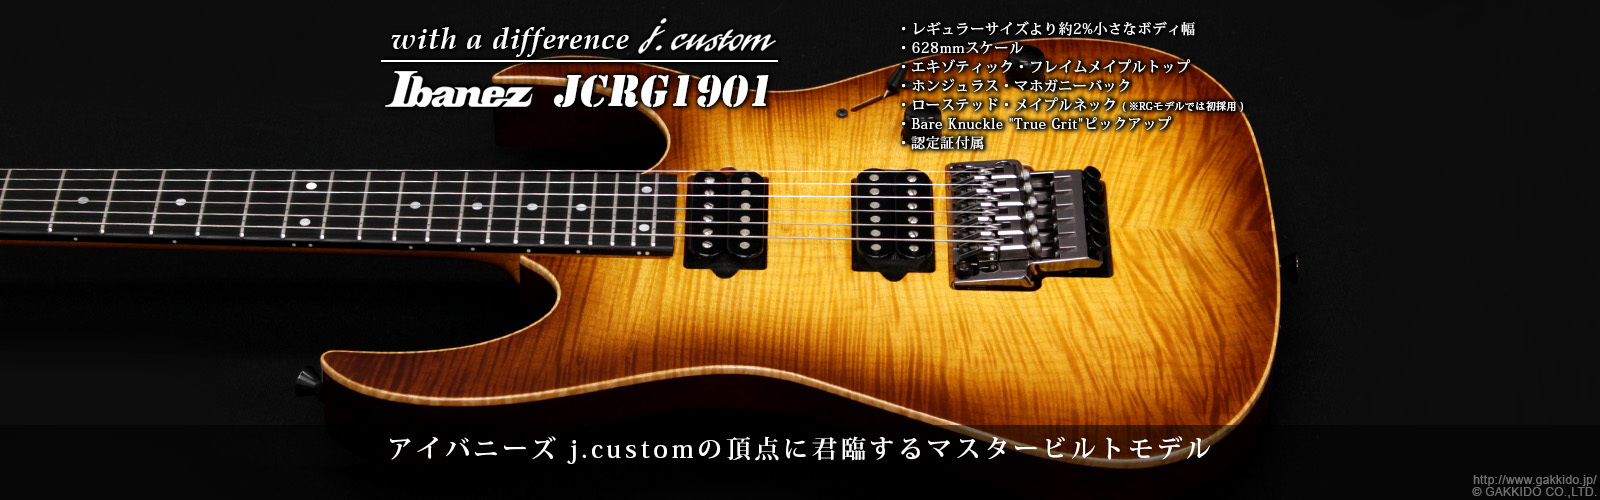 "Ibanez JCRG1901 VV ""with a difference j.custom"" [Vintage Violin] [限定モデル]"